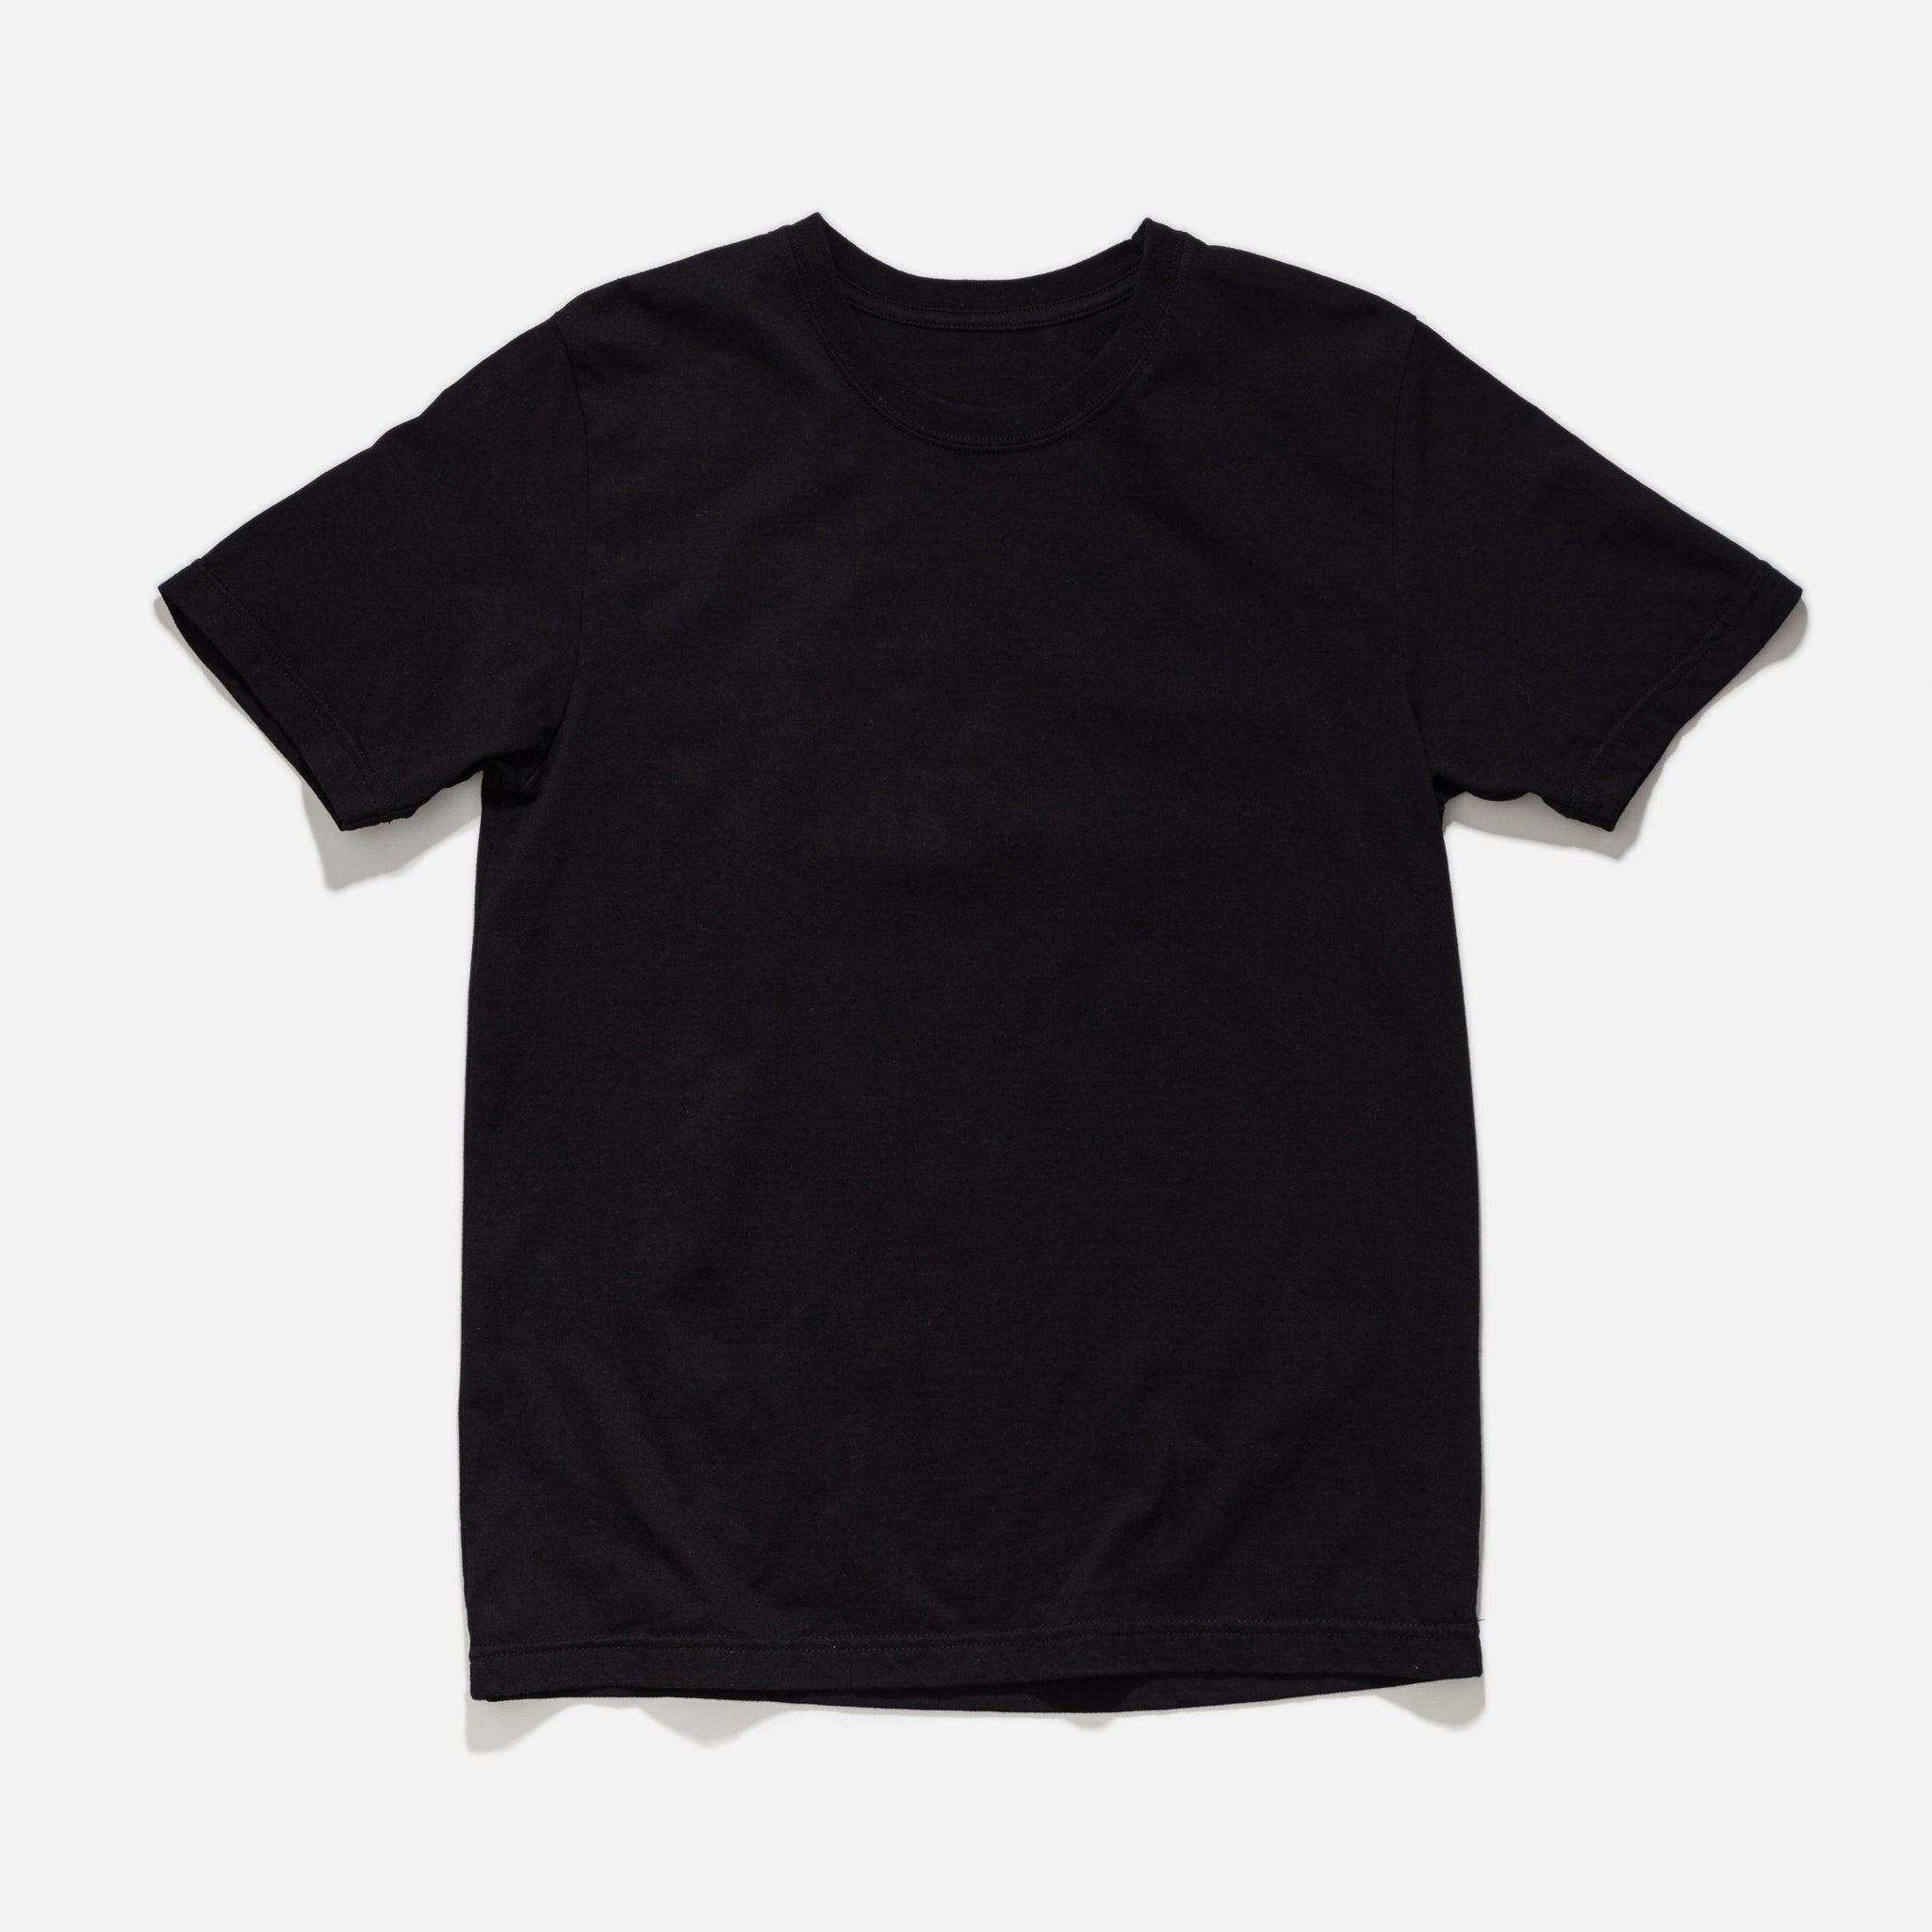 Regular Fit Tee - Black